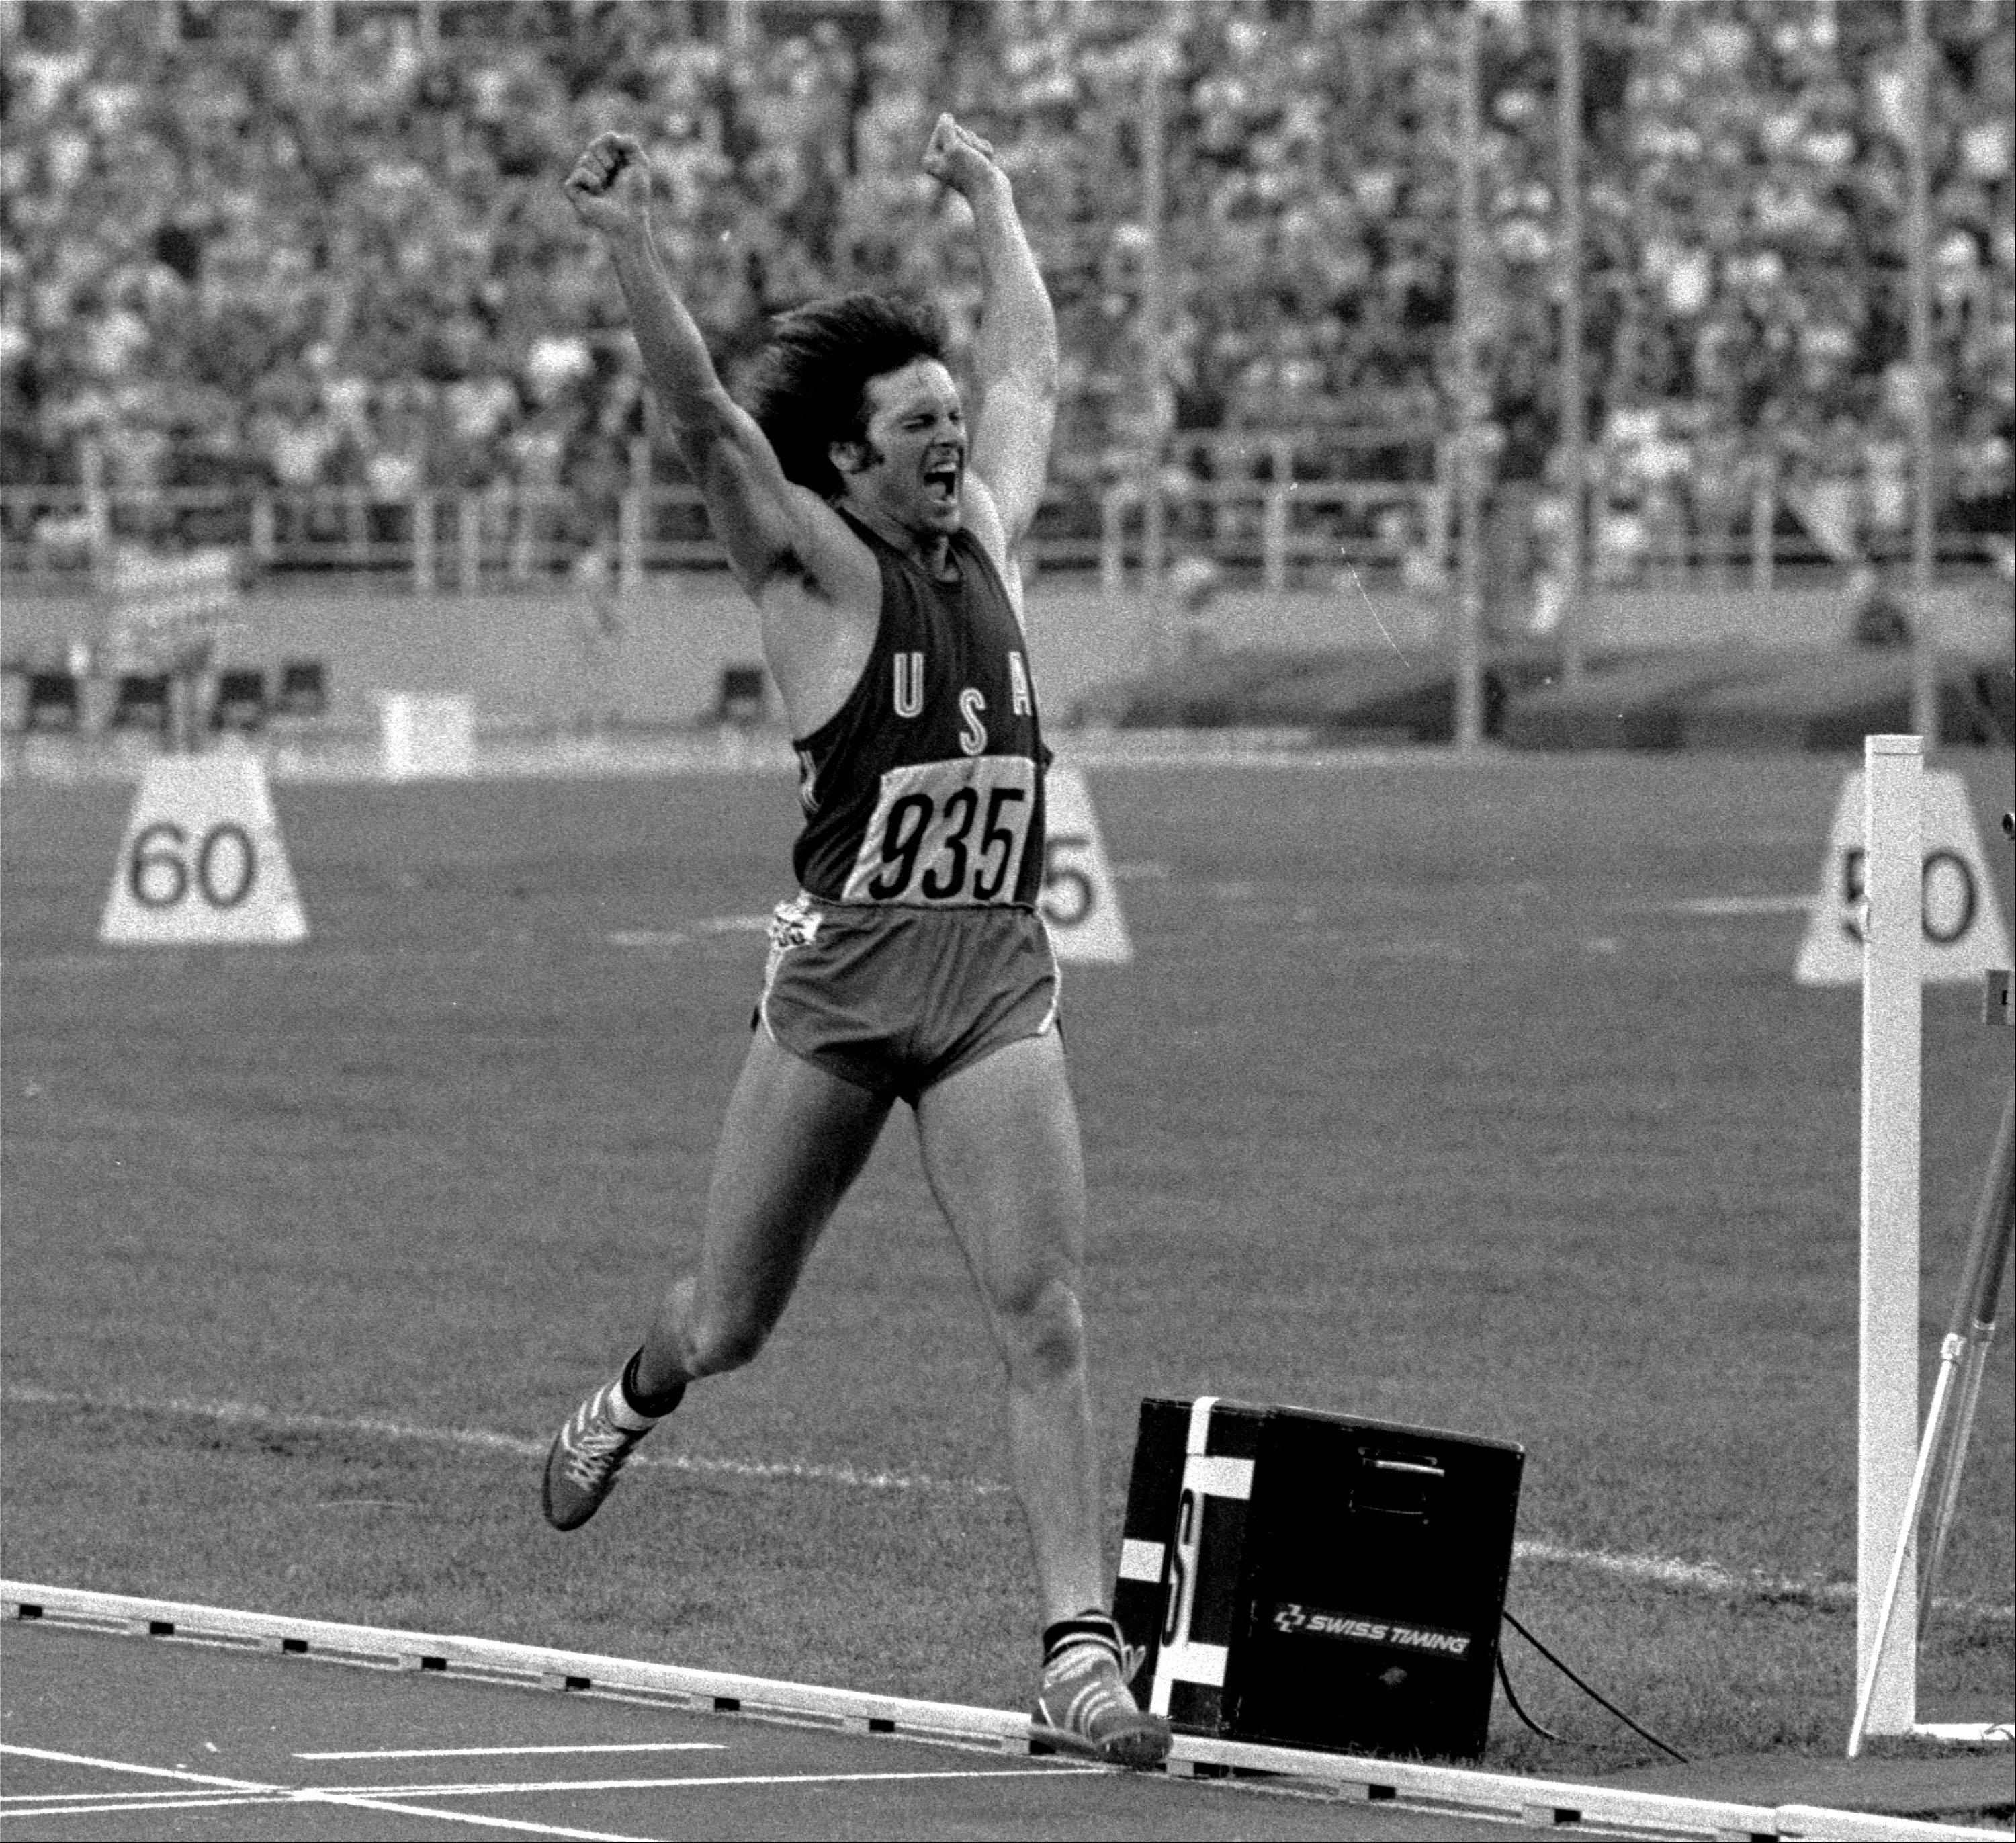 "FILE -- This July 30, 1976 file photo shows athlete Bruce Jenner reacting after securing gold in the Olympic Decathlon in Montreal, Canada. ""Keeping Up With the Kardashians"" family patriarch Bruce Jenner, the 1976 decathlon gold medalist, will head to London to be part of the E! team there later this month. E! became one of NBC Universal's stable of networks a year and a half ago. The company is building a studio for E! so celebrities and athletes can stop by for interviews. Its coverage, anchored by Giuliana Rancic, will be featured on E!'s entertainment newscasts, which run weeknights at 7 p.m. and 11:30 p.m."